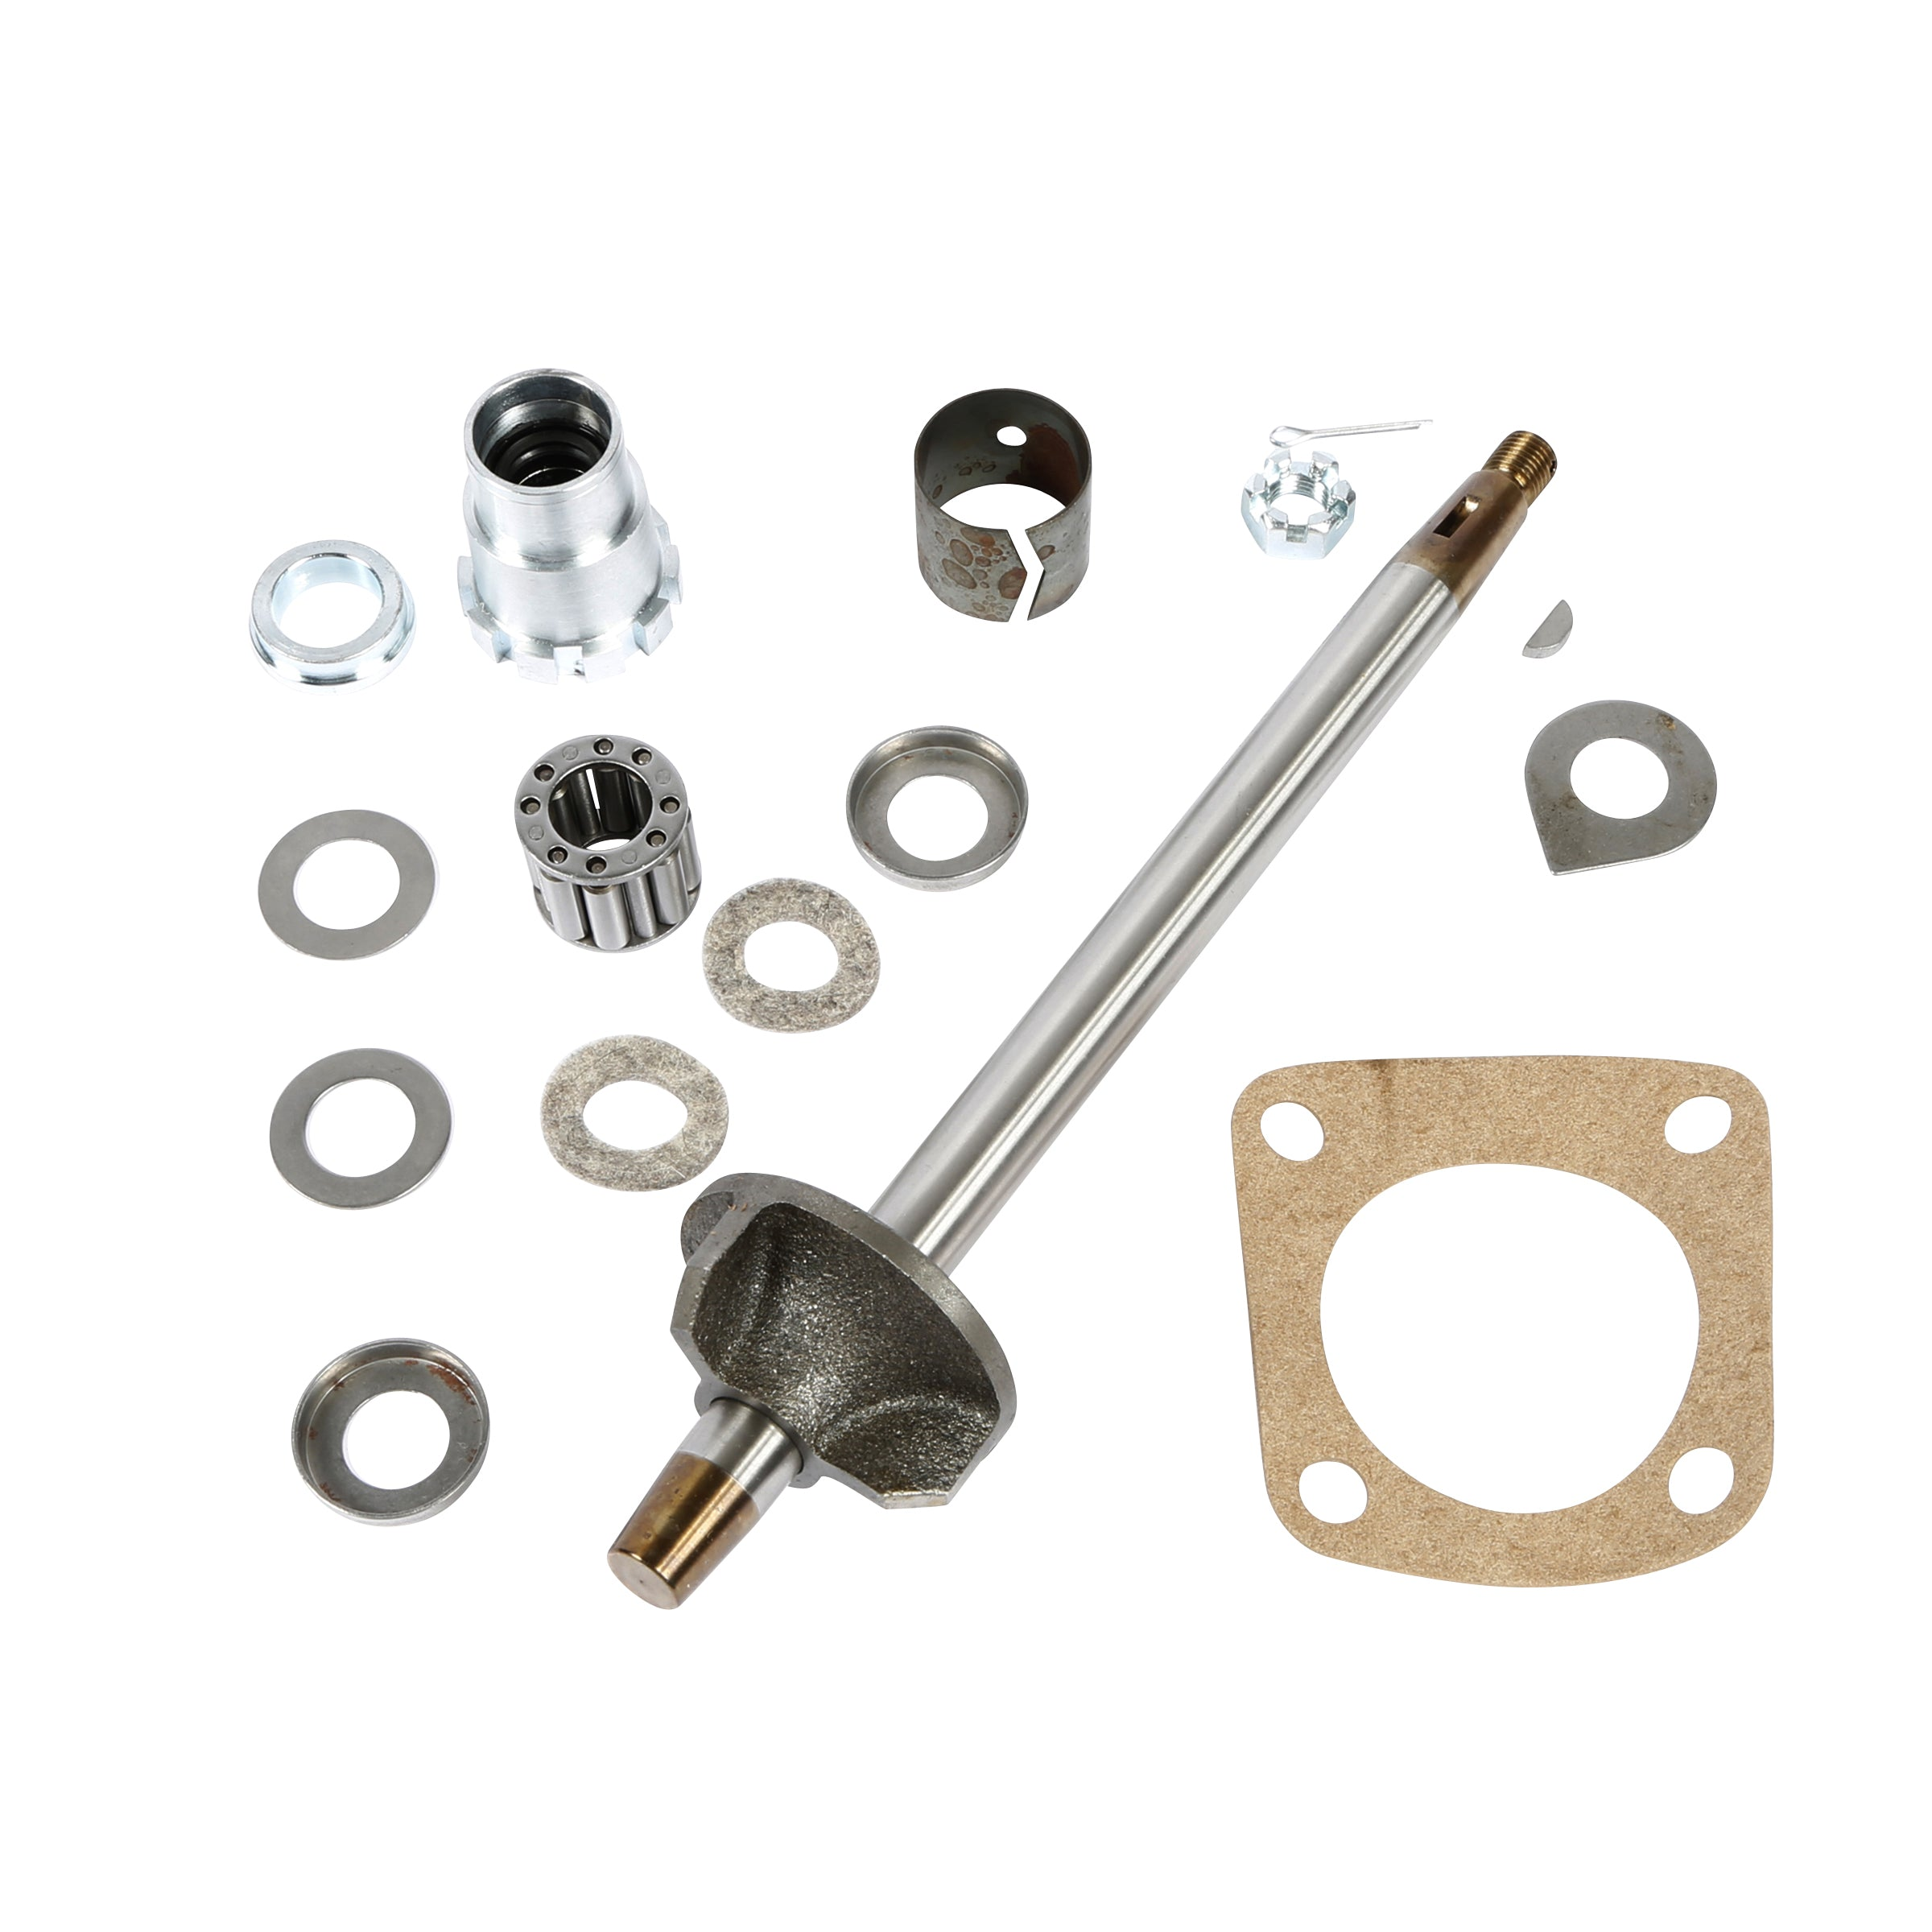 Water Pump Rebuild Kit (Leakless) • 1930-31 Model A Ford